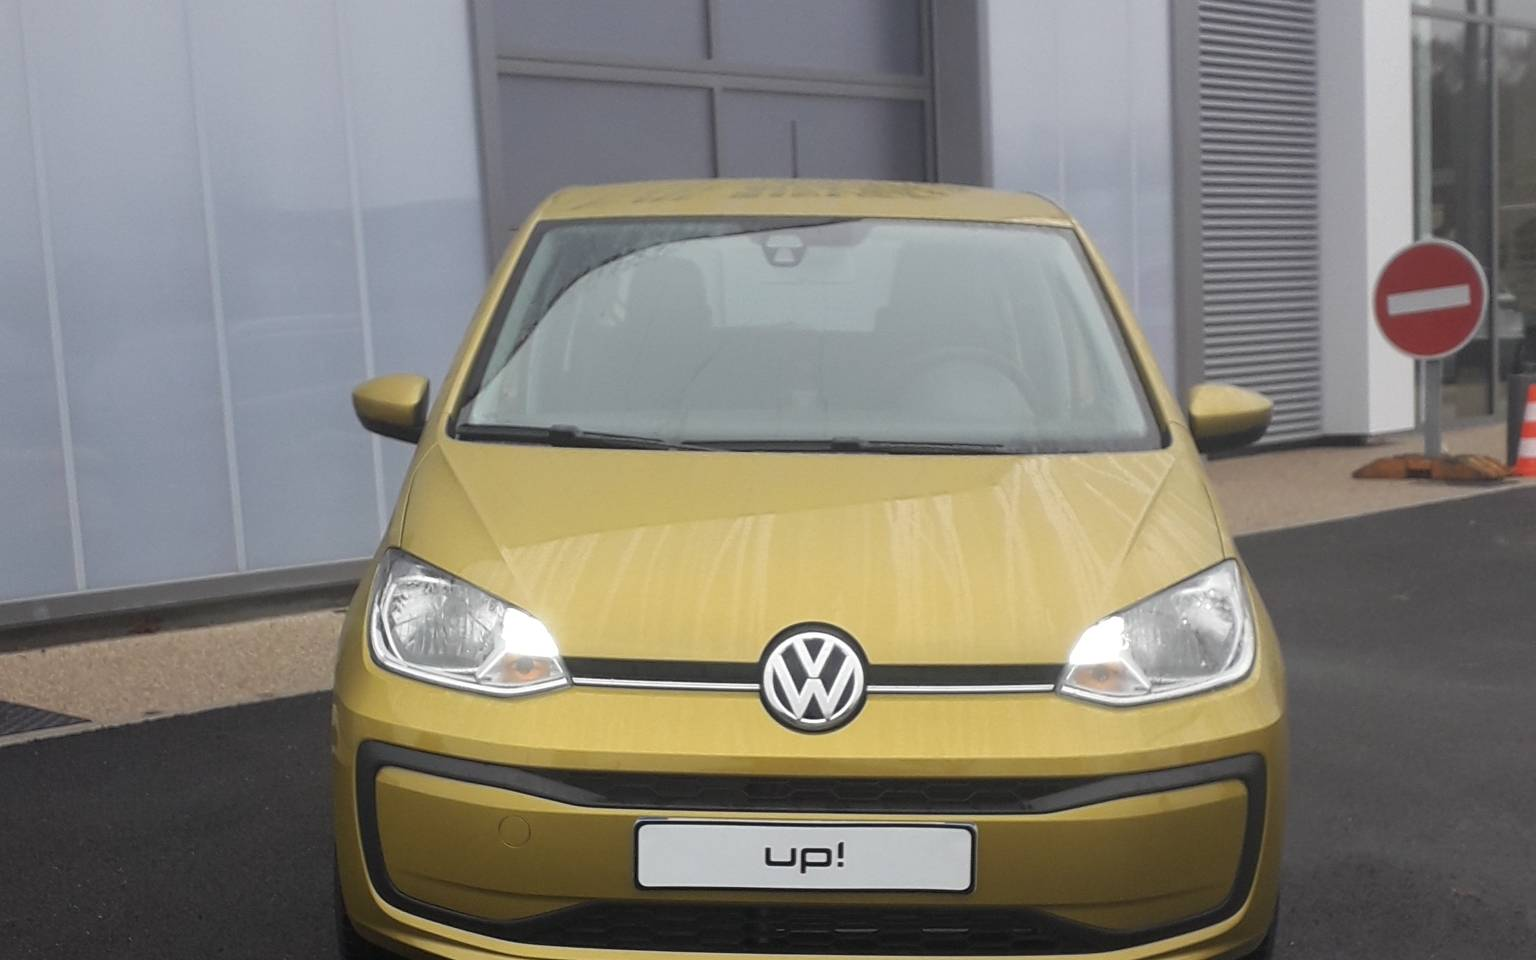 12 - Up 1.0 60 BlueMotion Technology BVM5